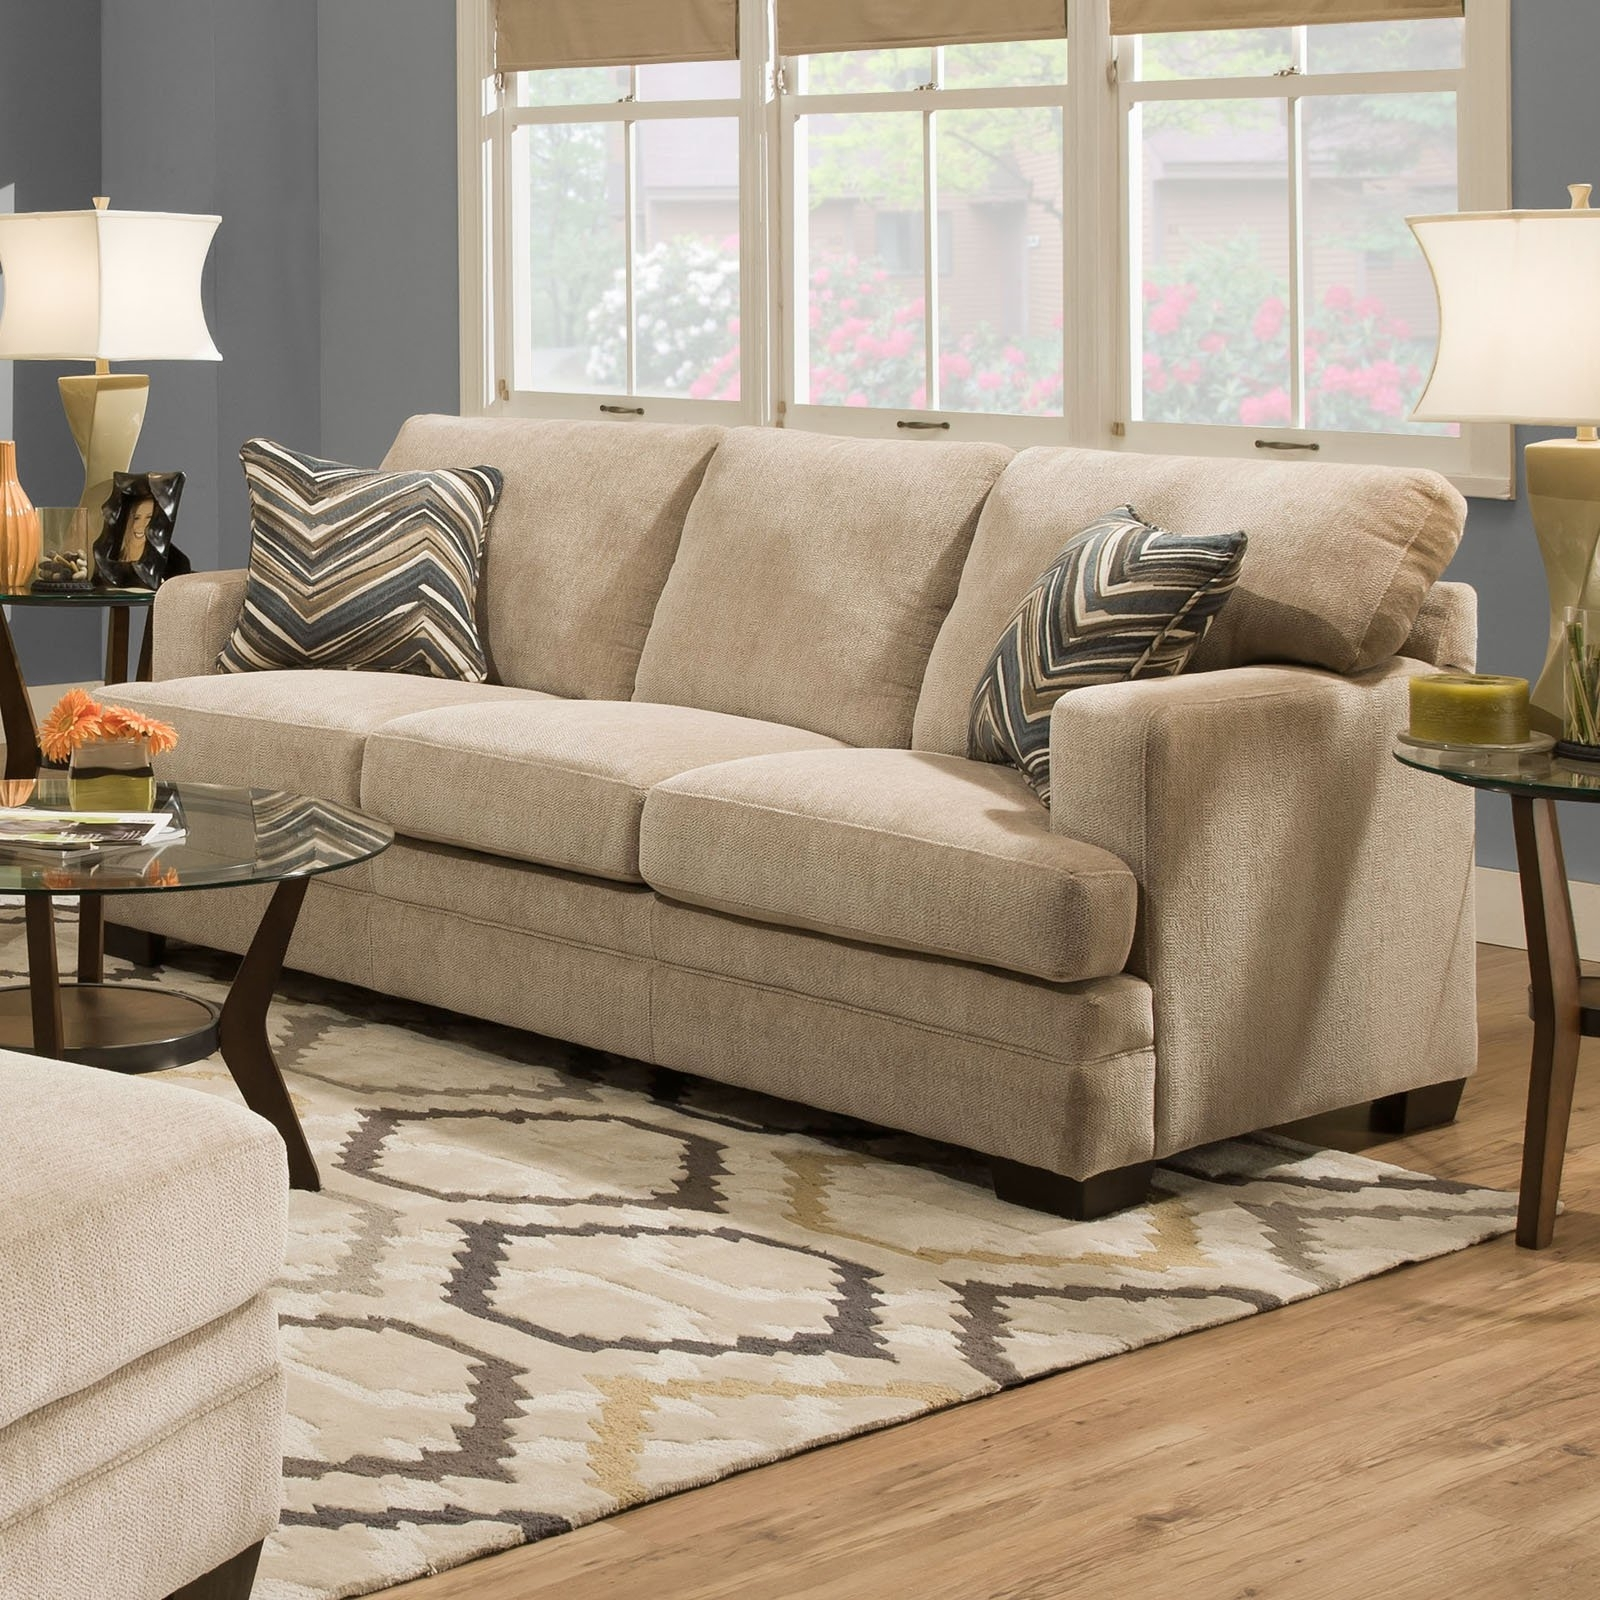 Widely Used Simmons Upholstery Sassy Sofa – Barley – Walmart Within Simmons Chaise Sofas (View 6 of 15)